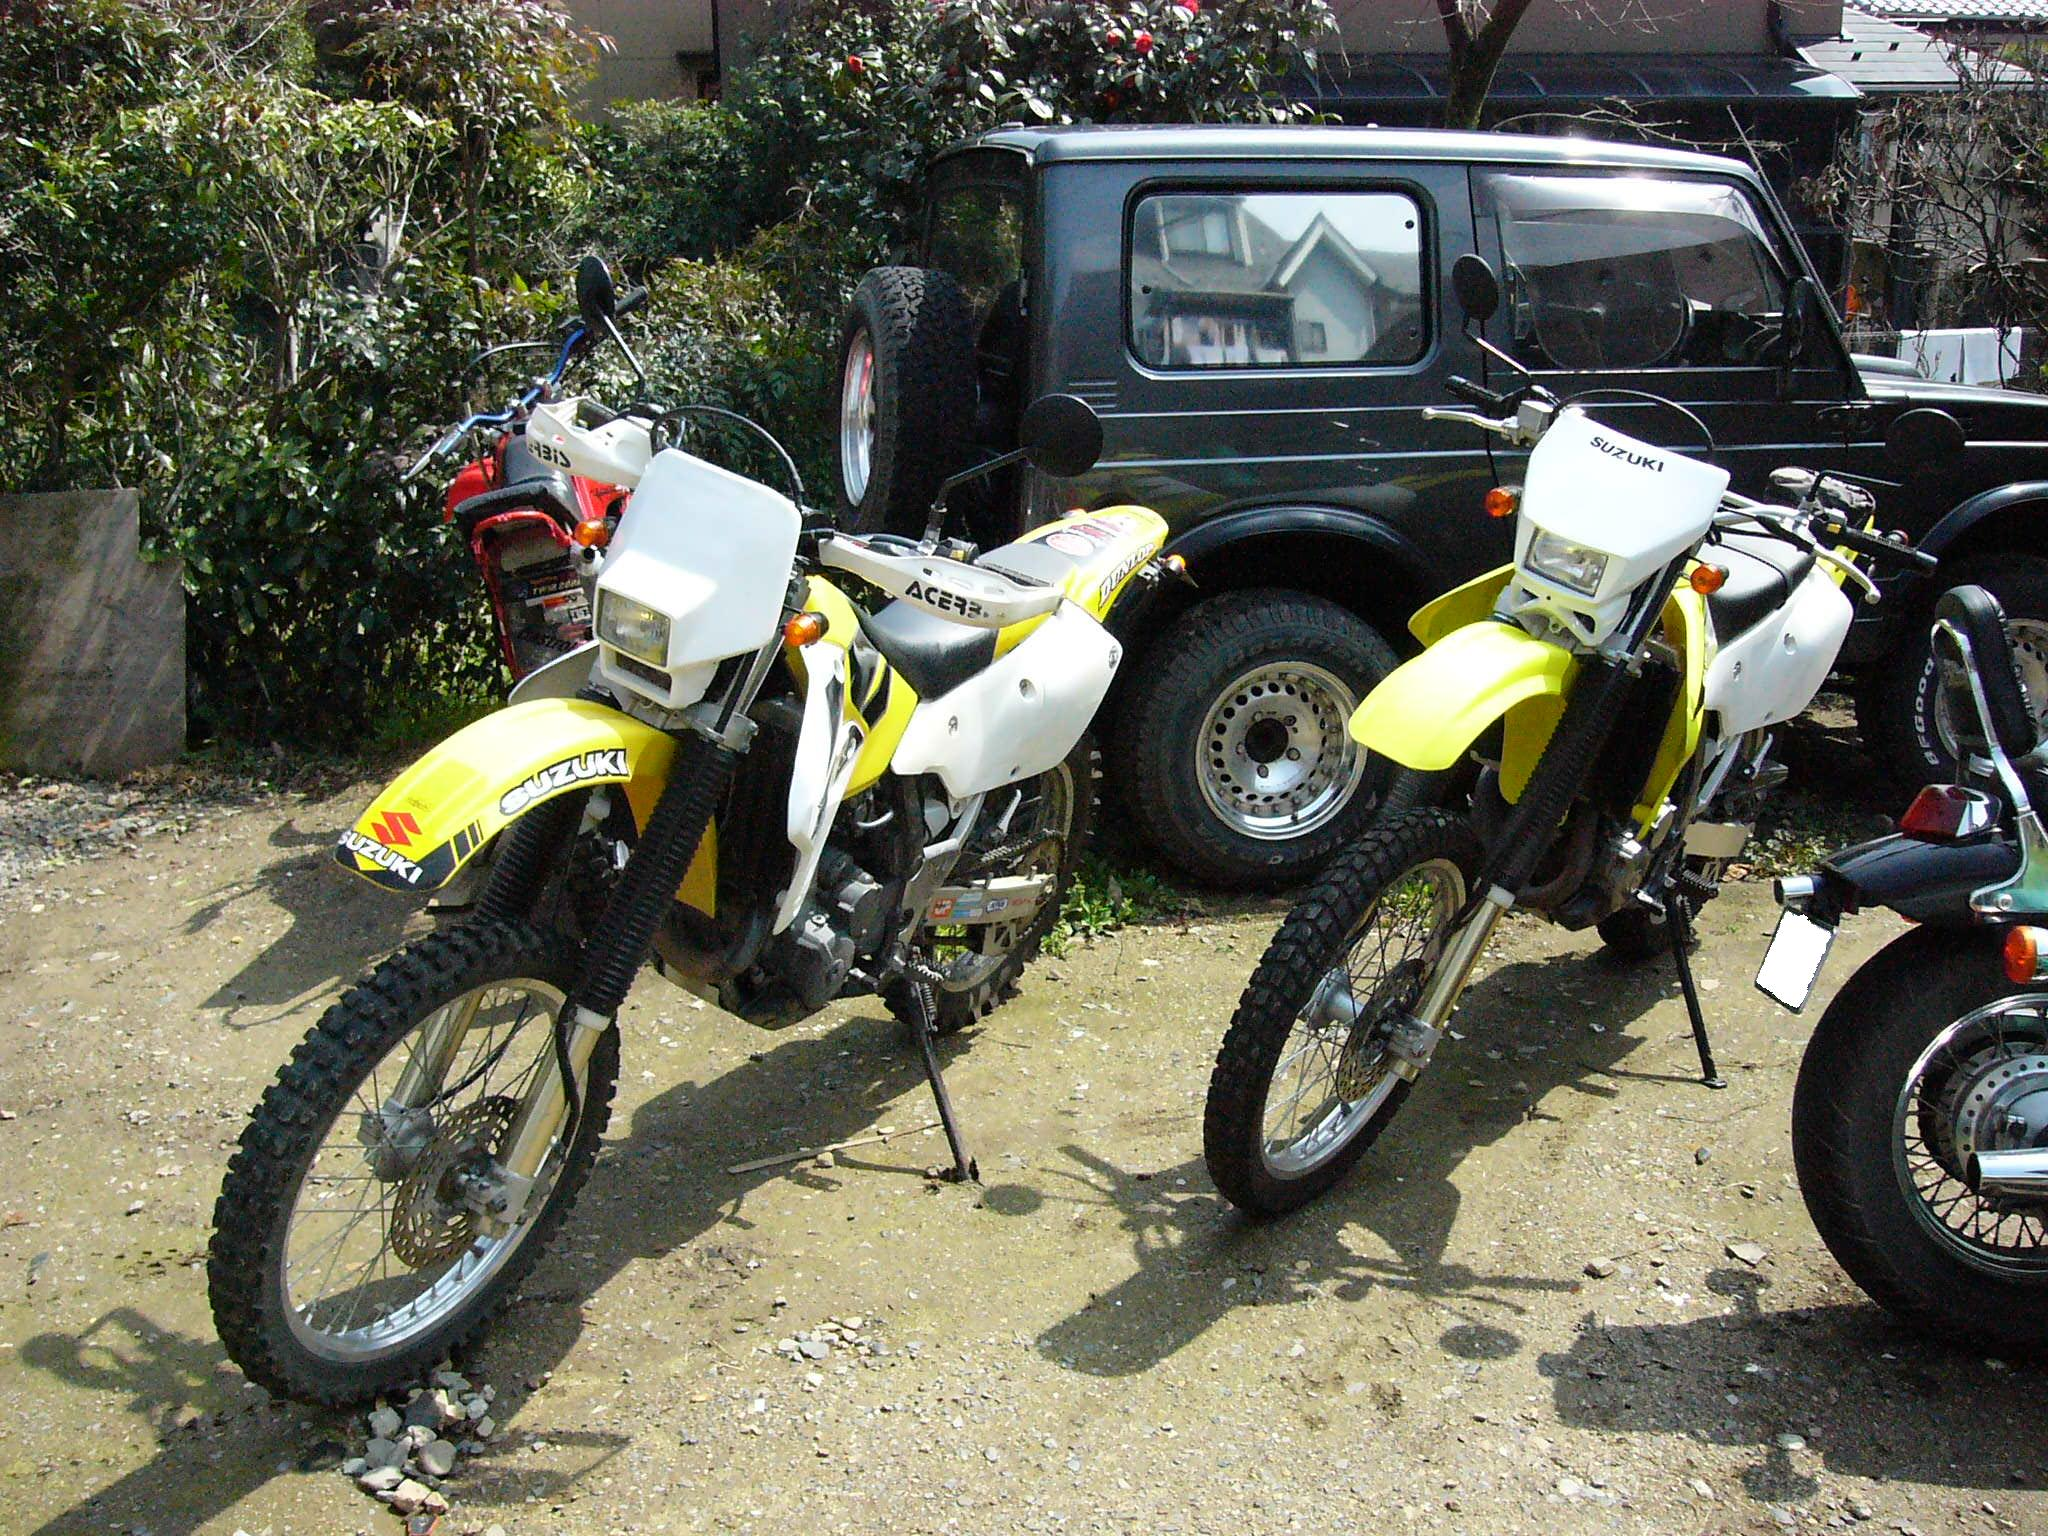 DRZ400Sマニア?